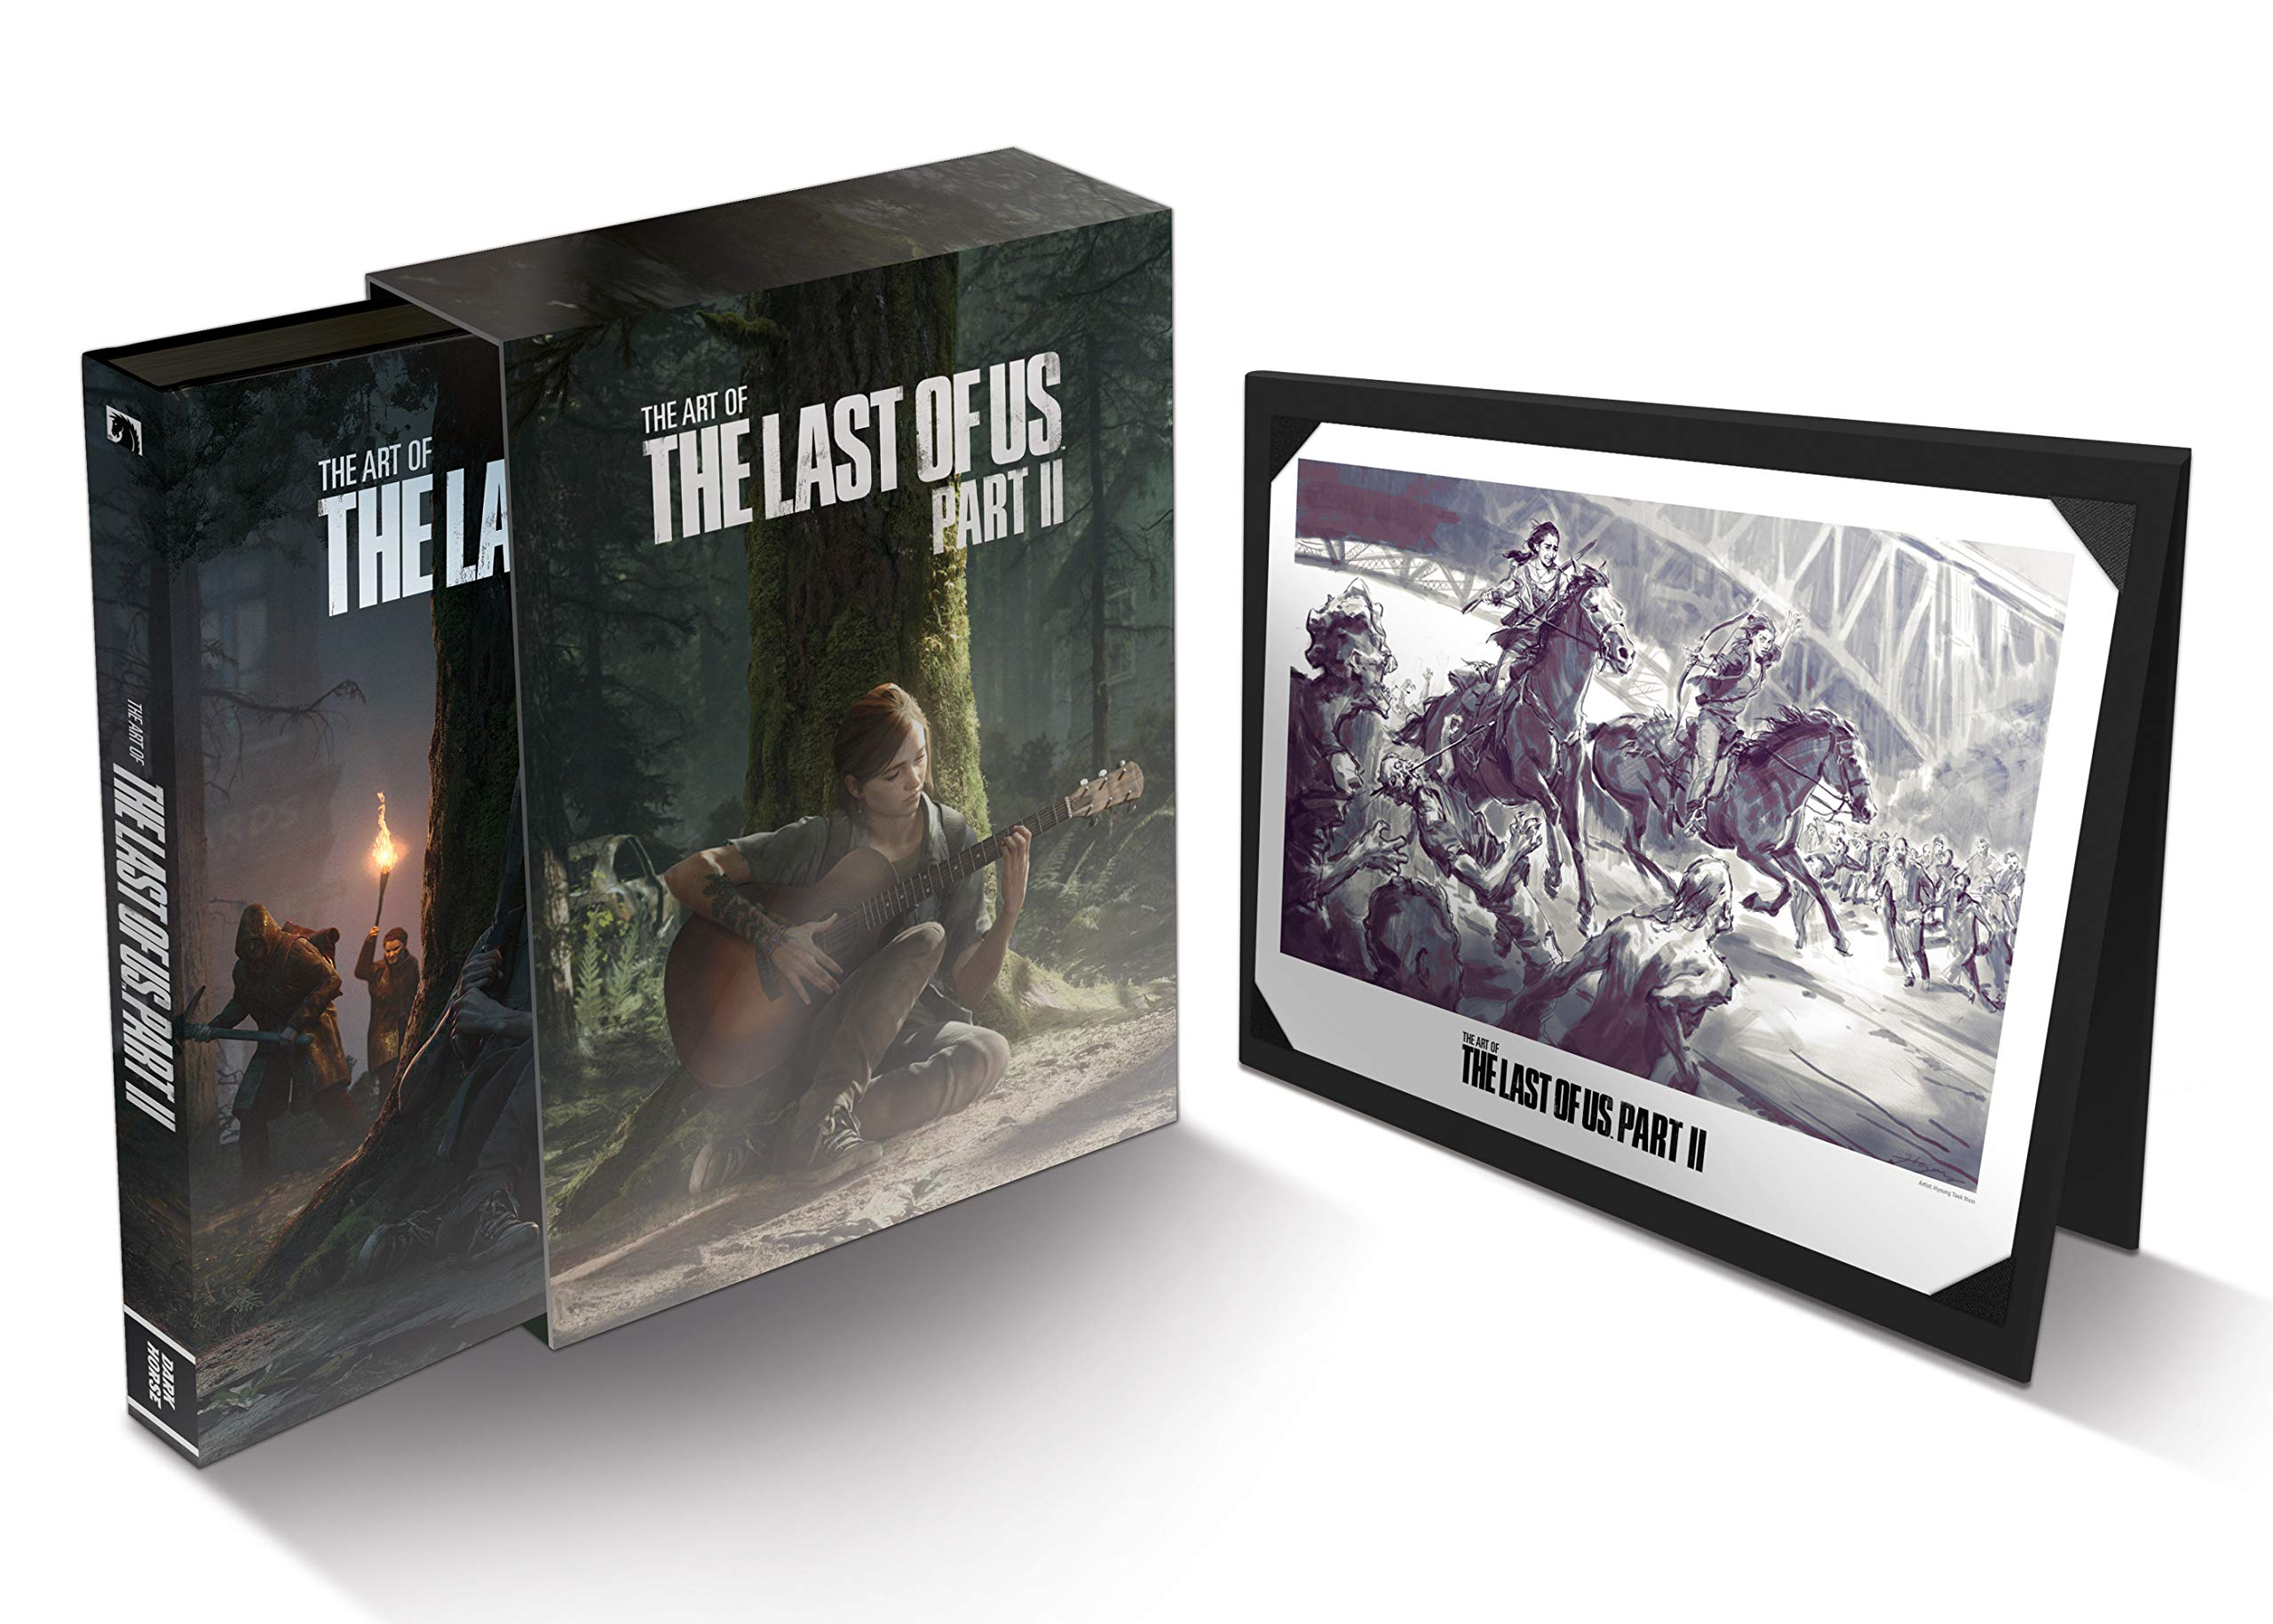 The Art Of The Last Of Us Part Ii Deluxe Edition 9781506716985 Naughty Dog Books